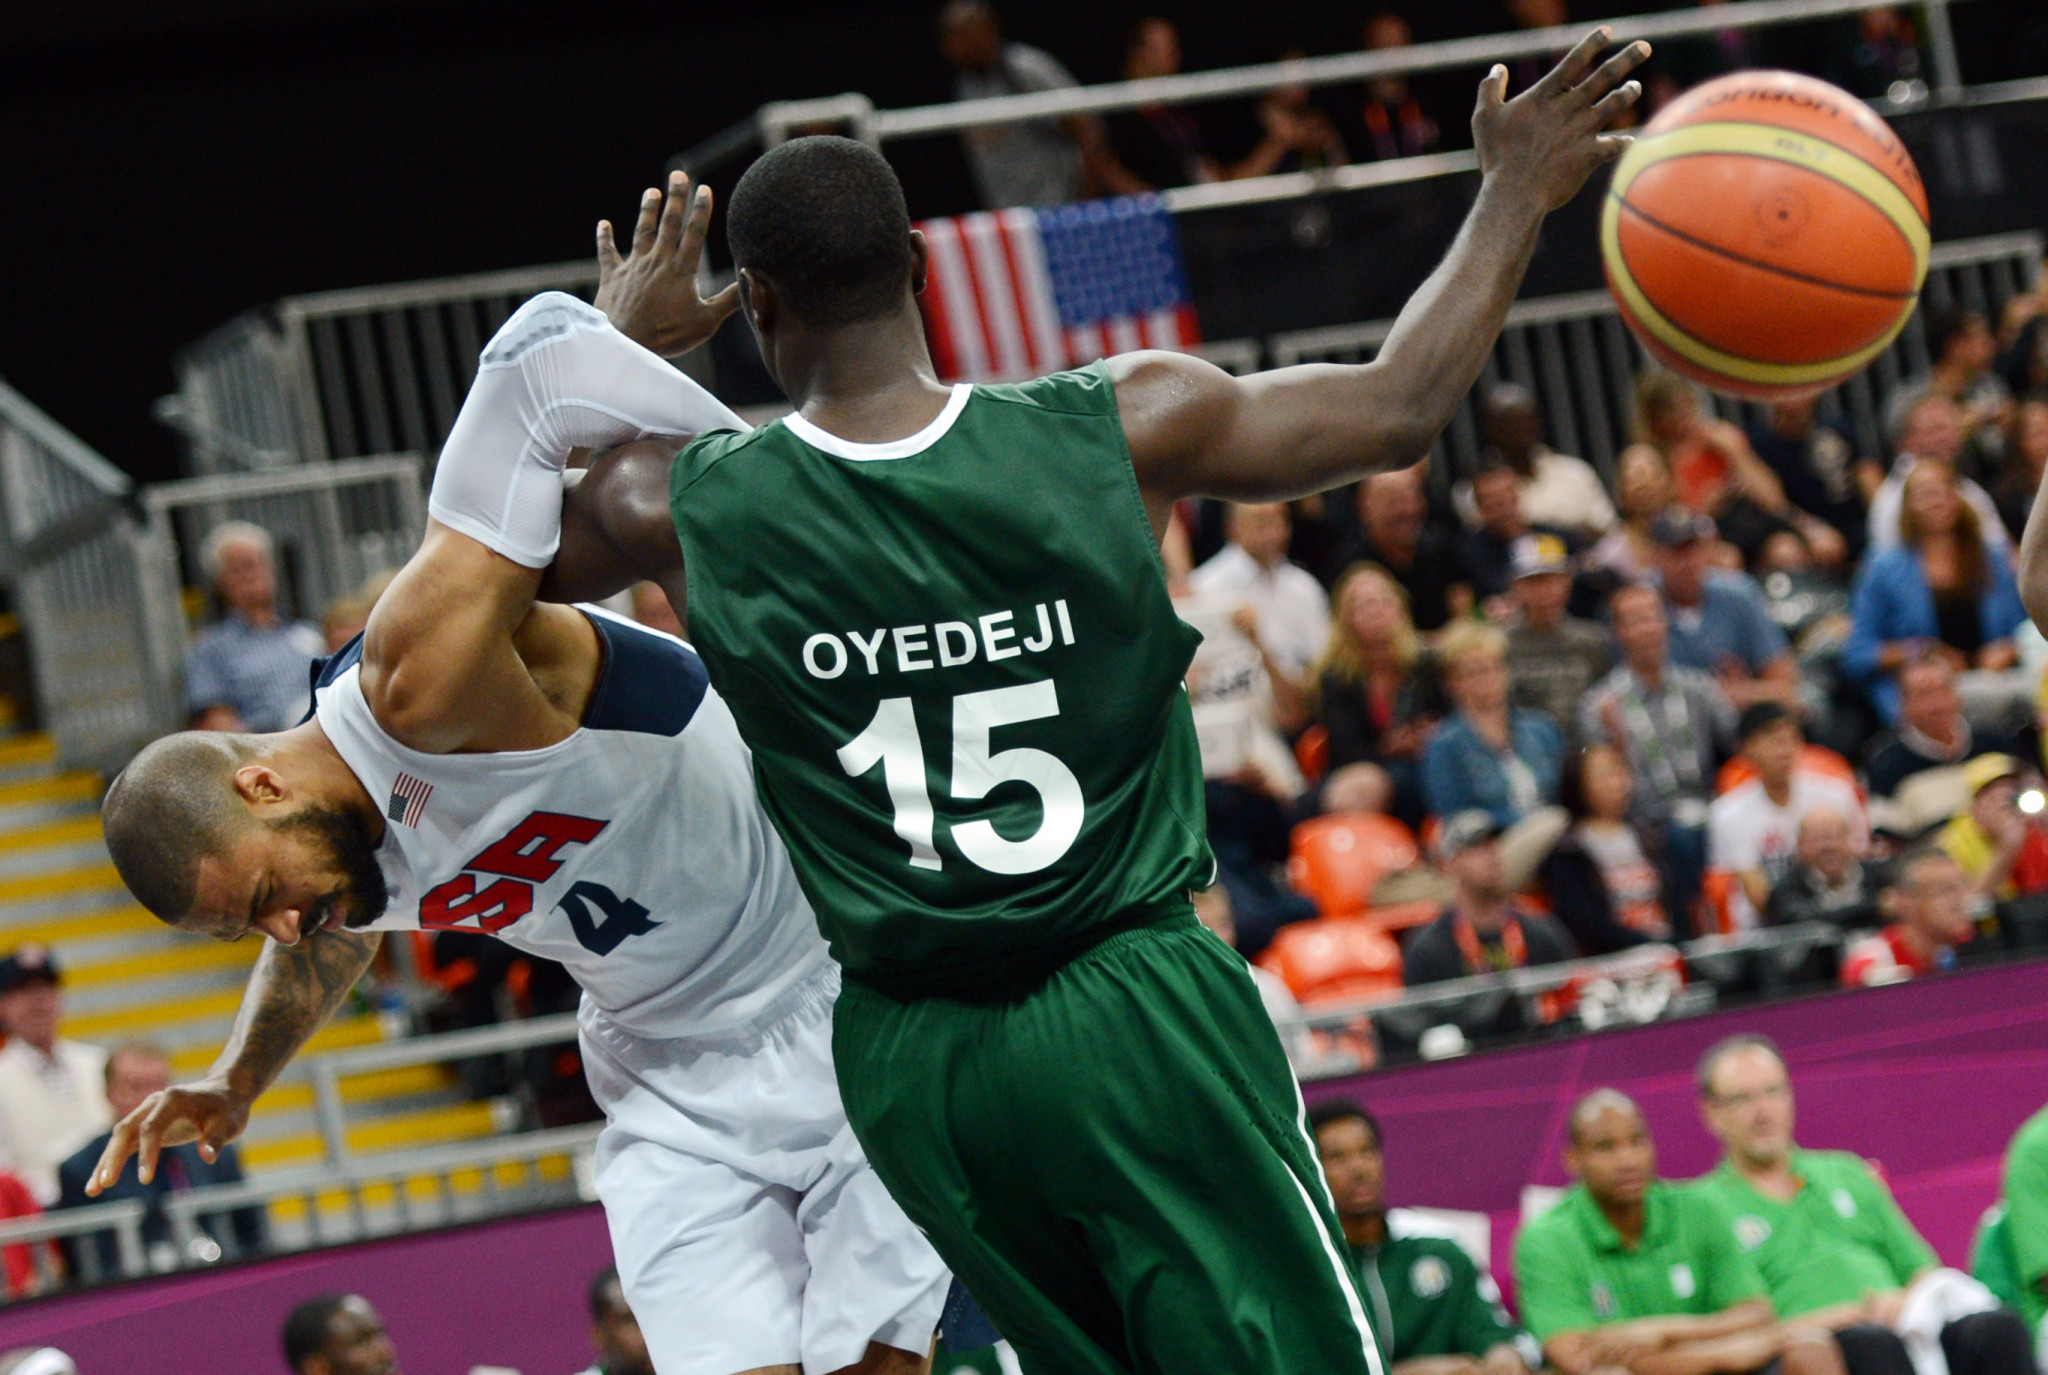 Nigeria's Olympic basketball player Olumide Oyedeji is the chairman of the Athletes' Commission ©Getty Images